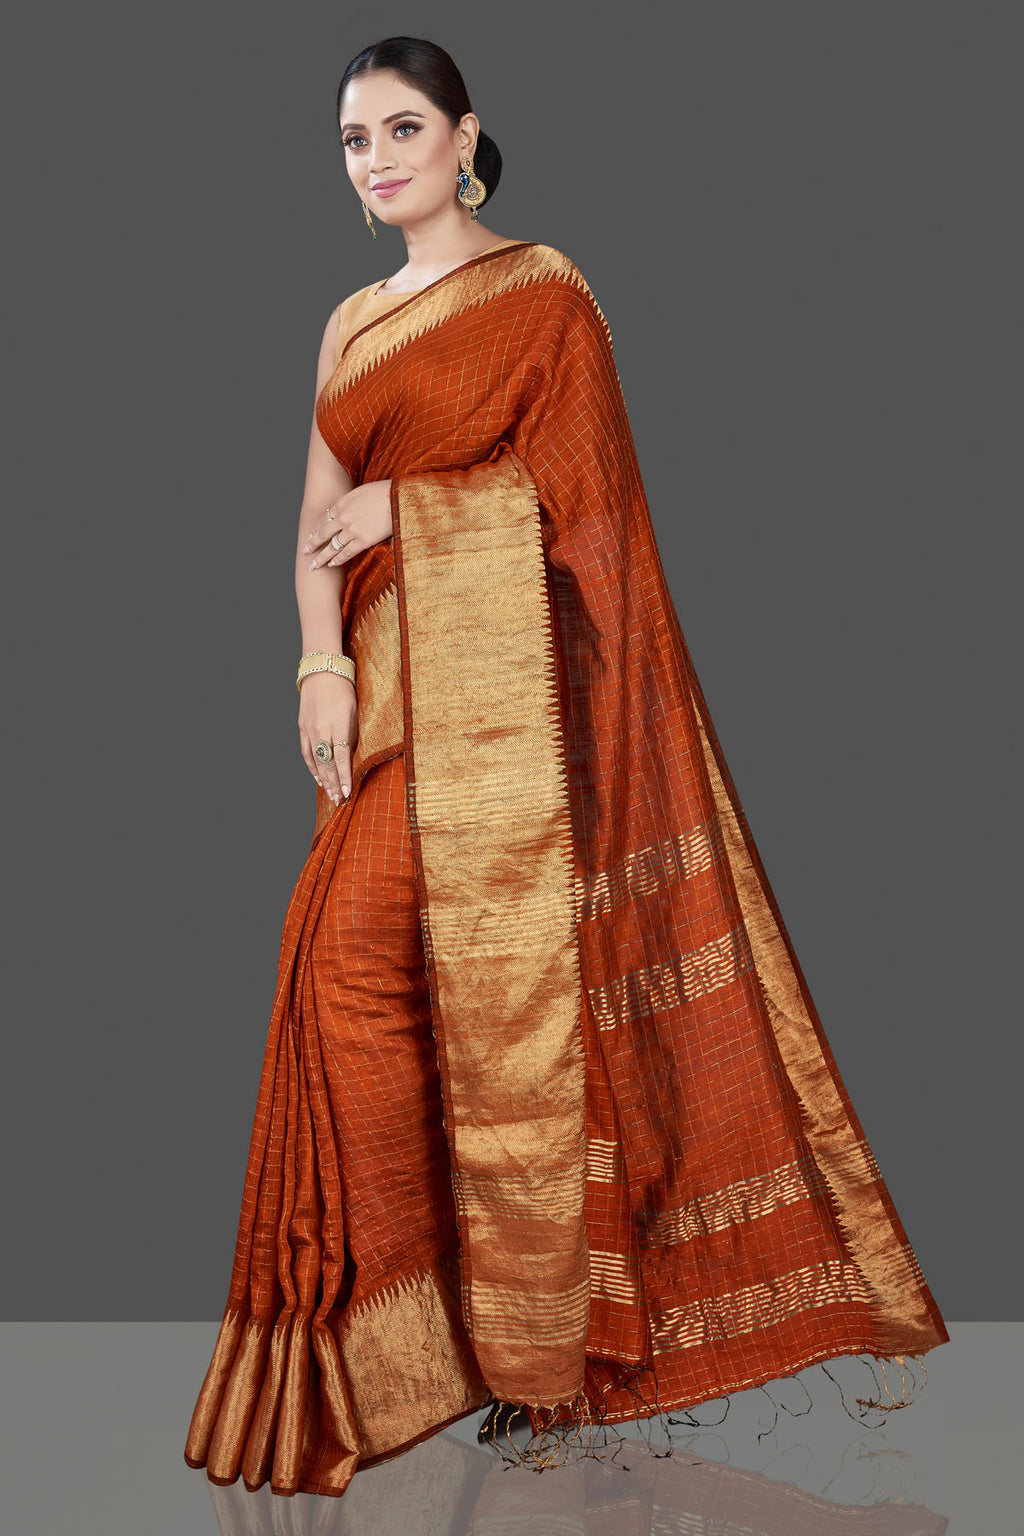 Buy beautiful rust orange matka silk saree online in USA with golden zari border. Be the talk of the occasion in exquisite designer sarees, pure silk sarees, tussar saris, embroidered sarees, handloom sarees from Pure Elegance Indian fashion store in USA.-full view